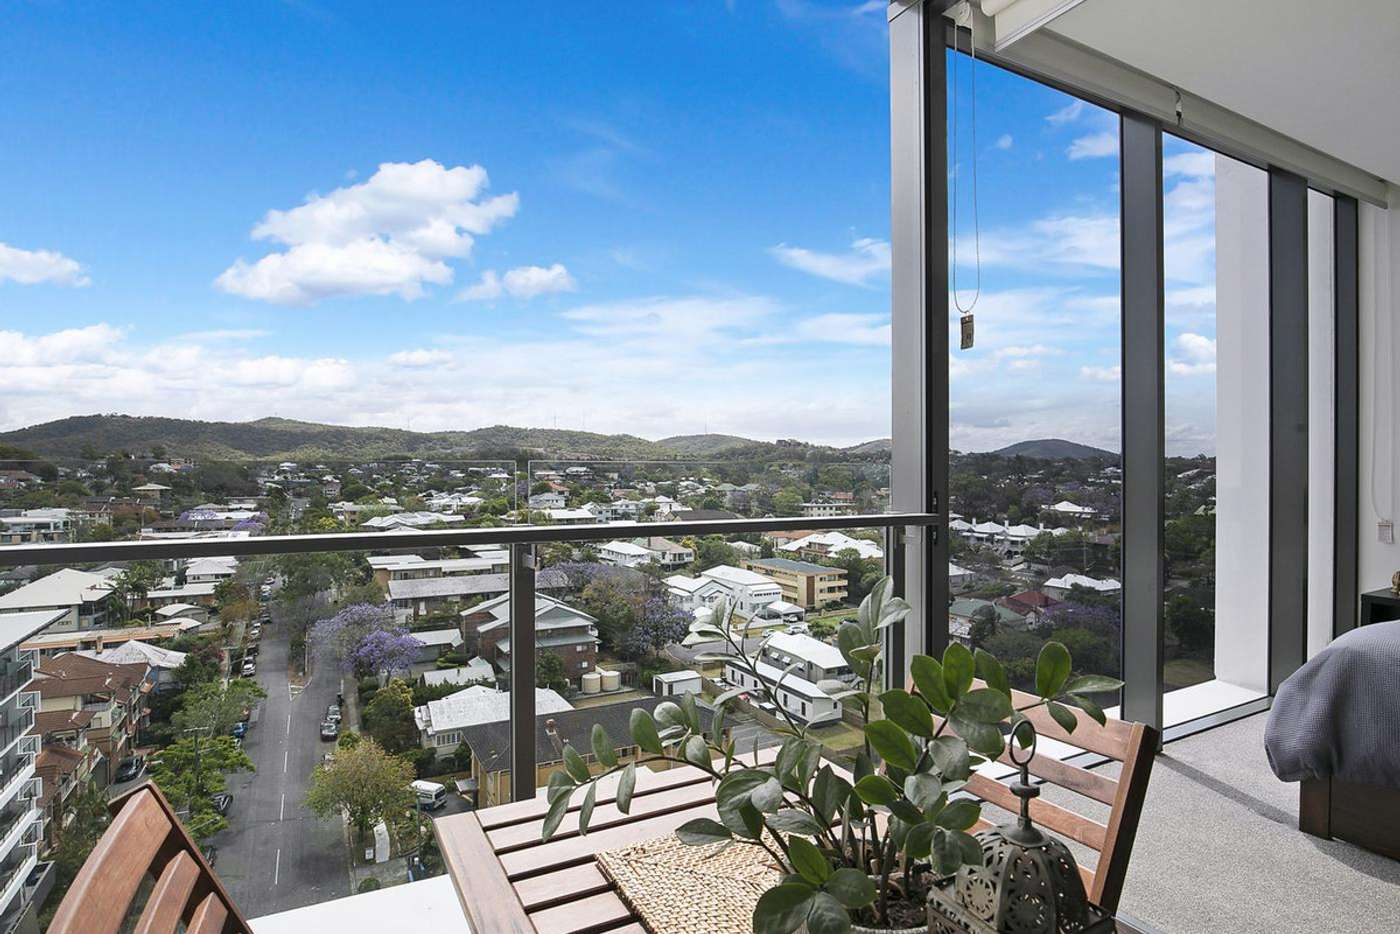 Main view of Homely apartment listing, 1107/48 Jephson Street, Toowong QLD 4066